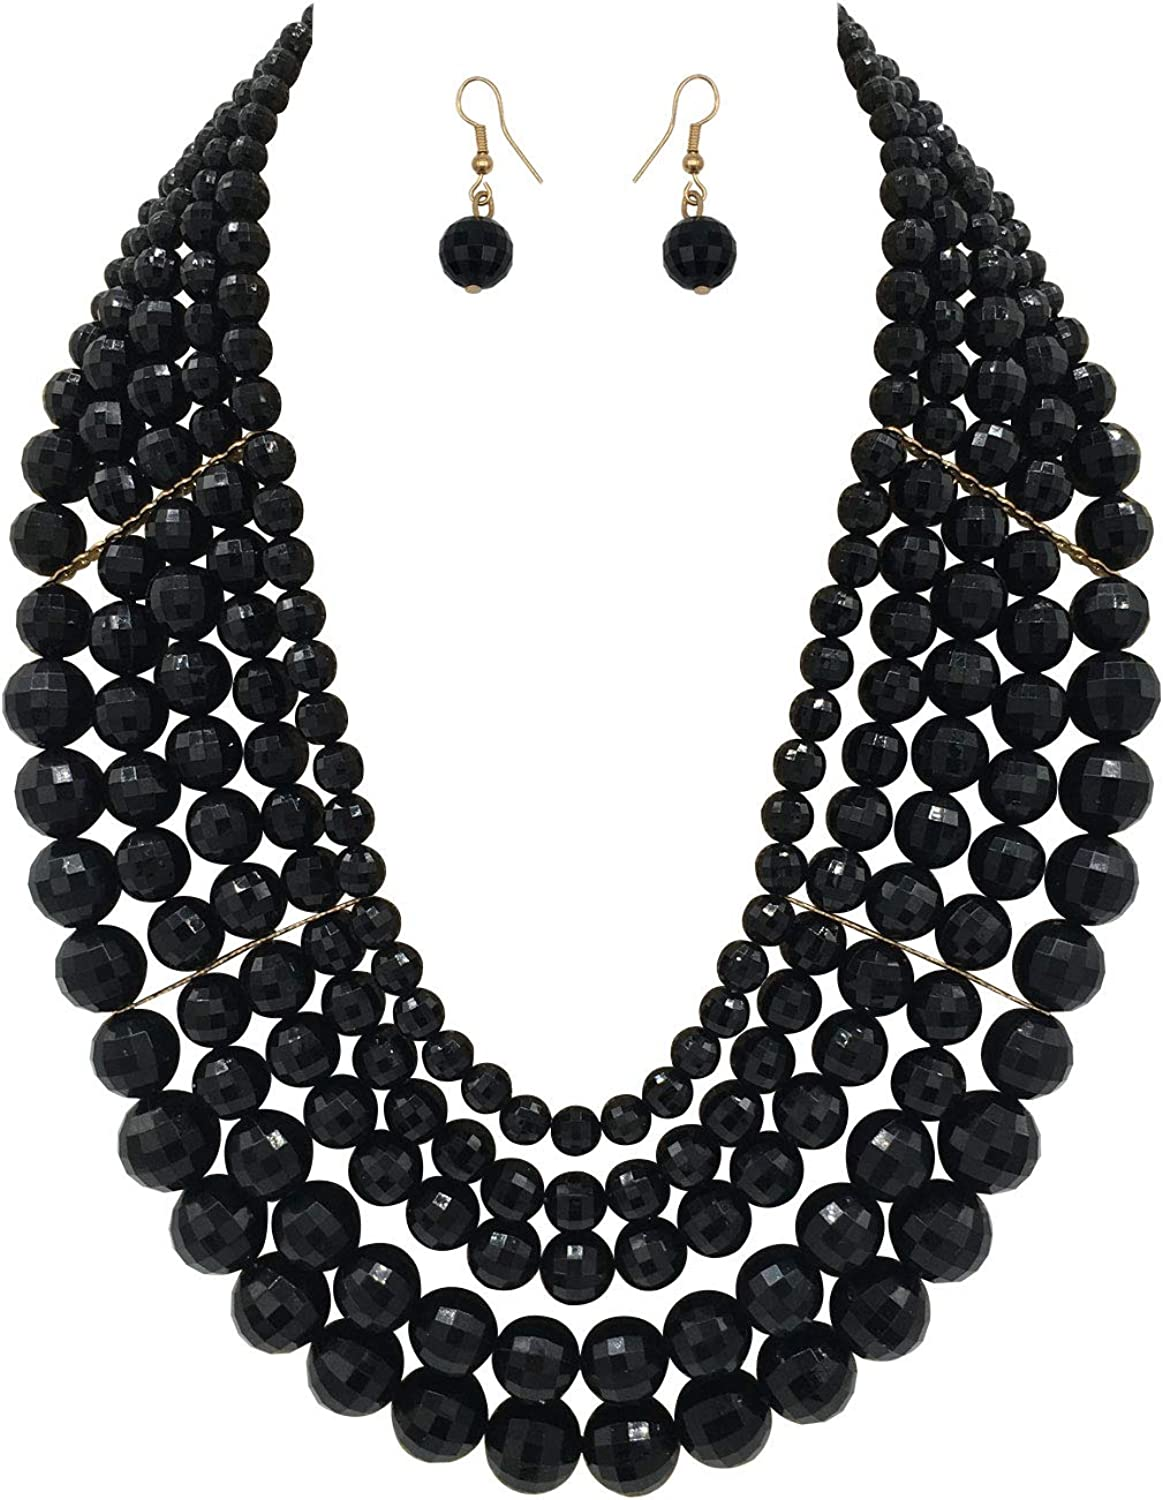 Statement necklace,beaded necklace,black necklace,chunky necklace,seed bead necklace,bridesmaid gifts,multistrand necklace,bridesmaid gifts